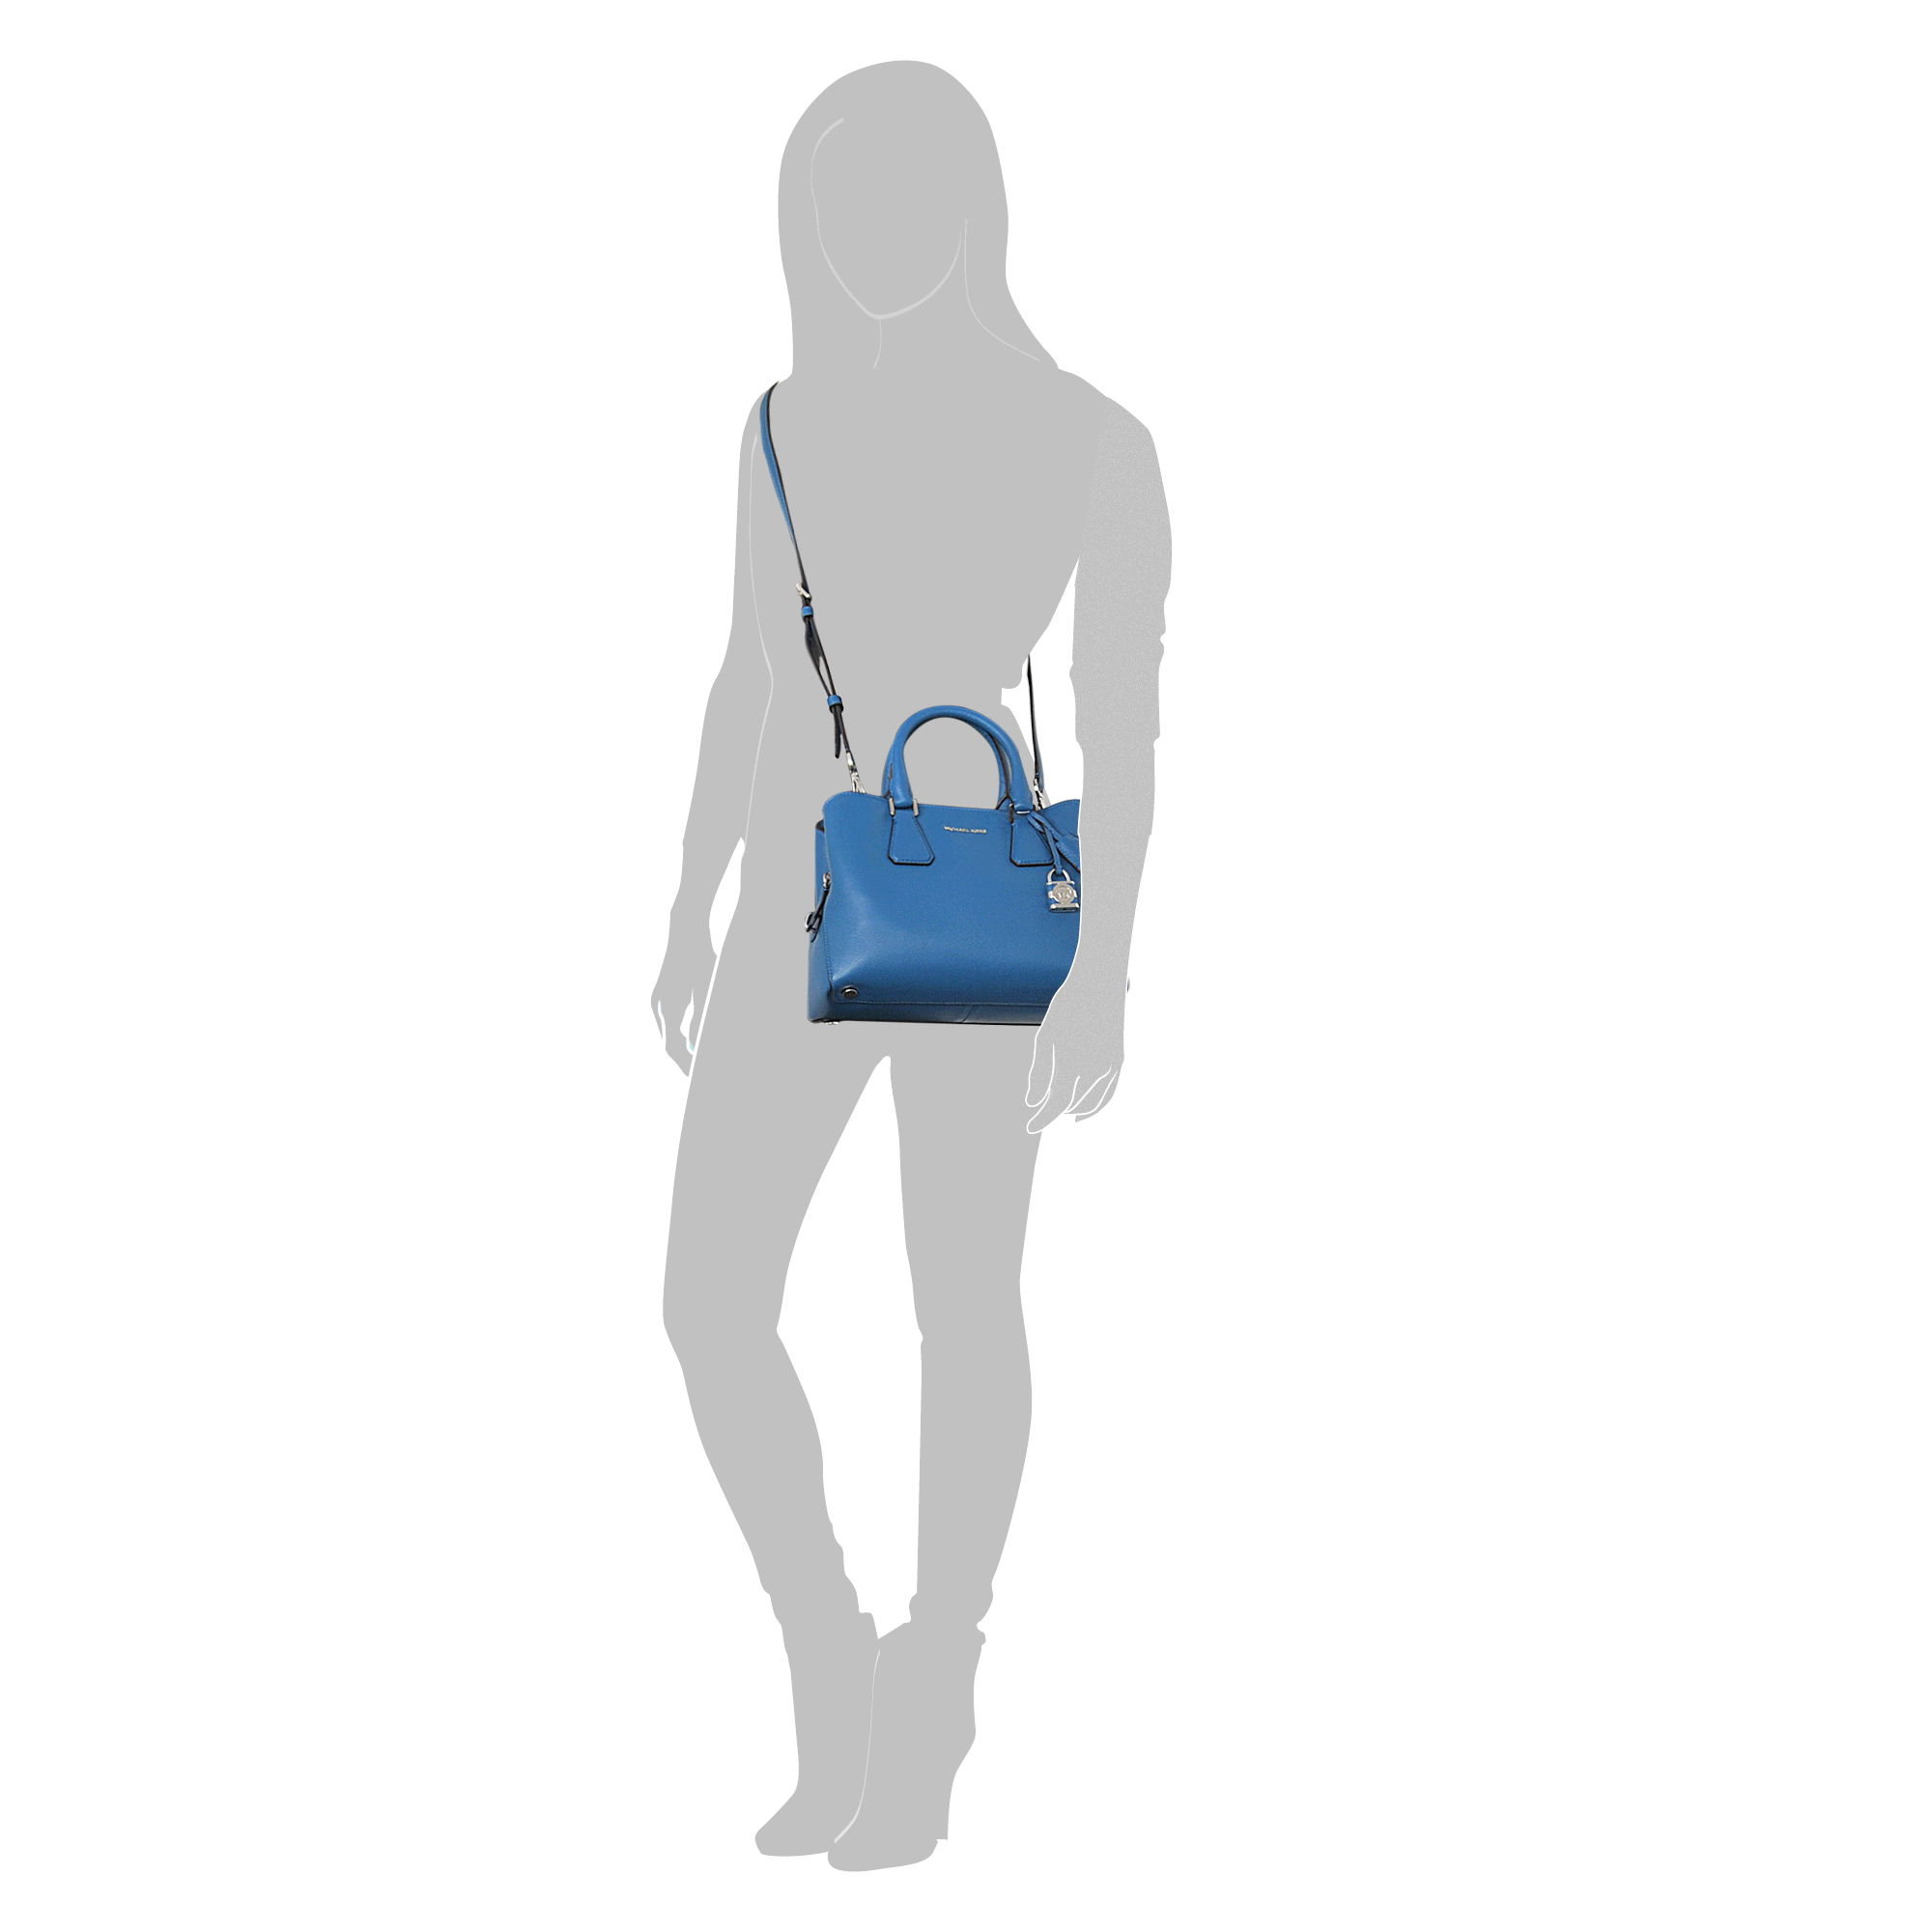 6dcf7585e8d5 Michael Kors Camille Large Leather Satchel, Ballet(Pink) Michael Michael  Kors Camille Medium Satchel in Blue - Lyst ...